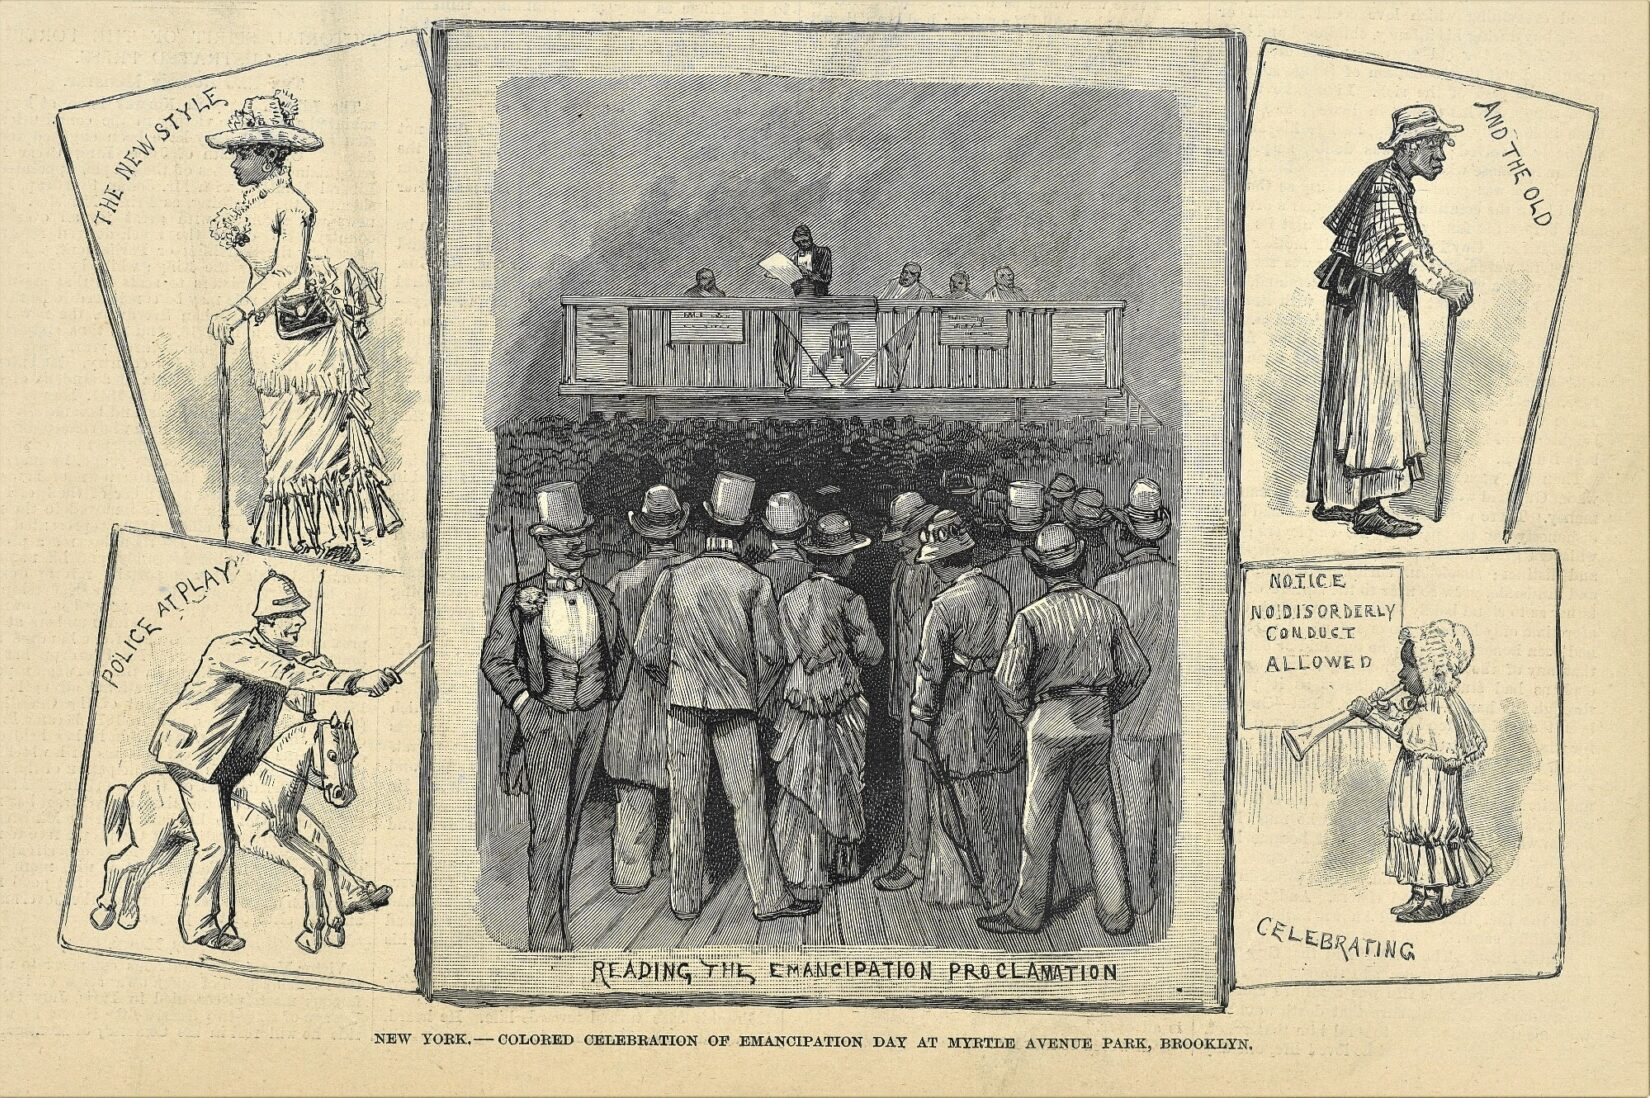 The illustrations in the yellowed image are hand-drawn and typical of the time.